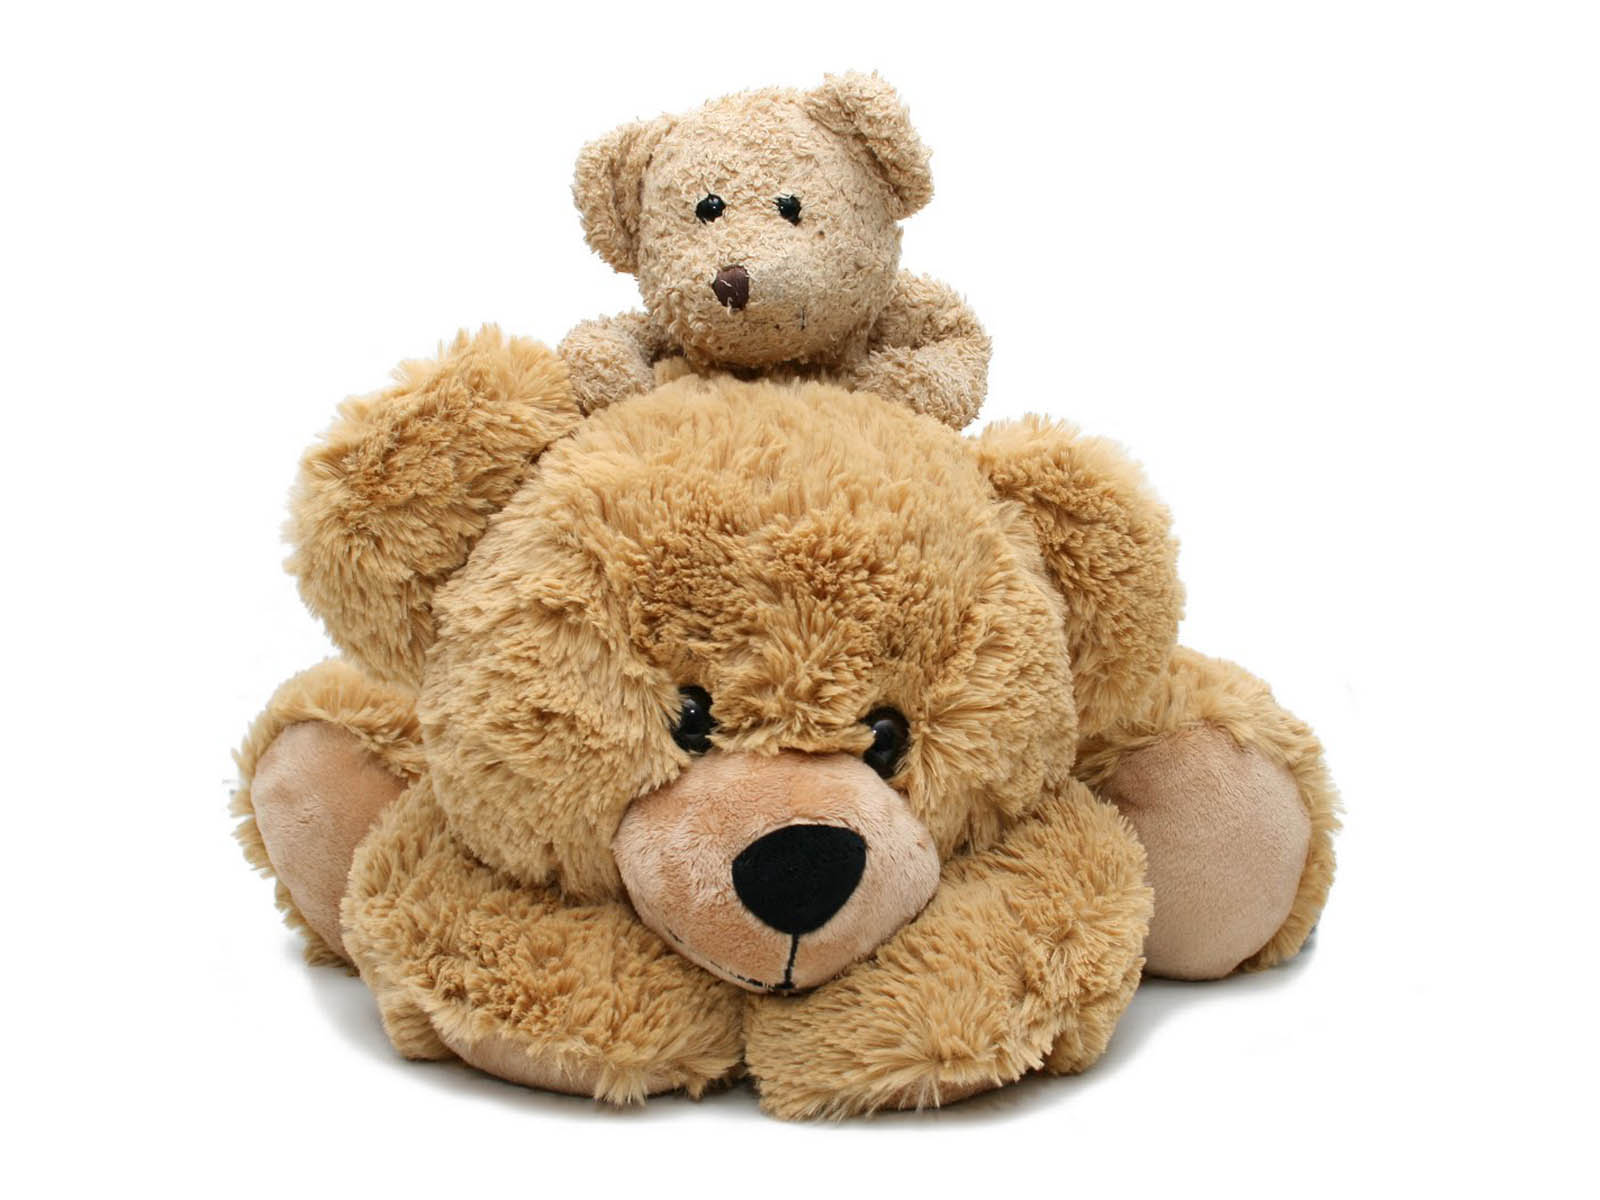 HD Wallpapers: Teddy Bear Pictures